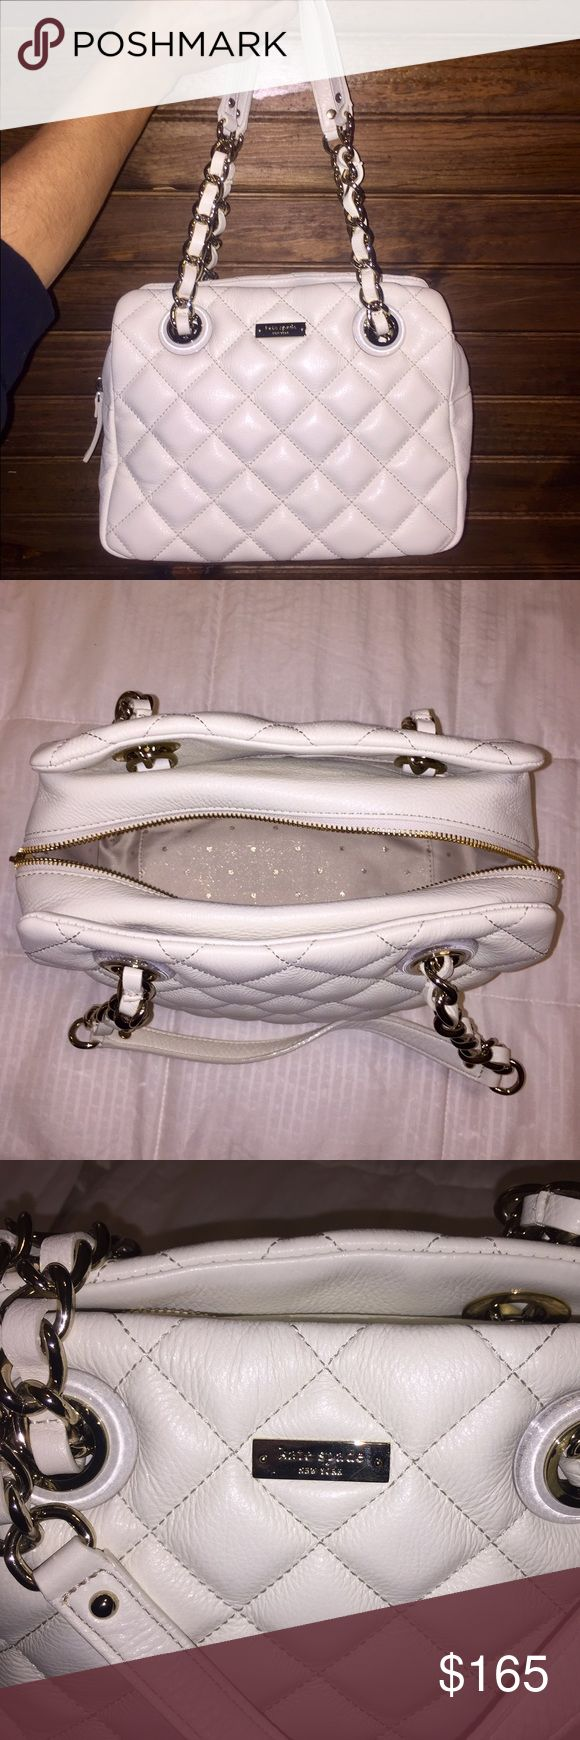 Kate Spade ♠️ Elizabeth, clogged cream purse Kate Spade, Elizabeth, Gold Coast, clotted cream purse. Tags and dust bag included. Barely worn. Spacious inside, with several compartments! kate spade Bags Shoulder Bags